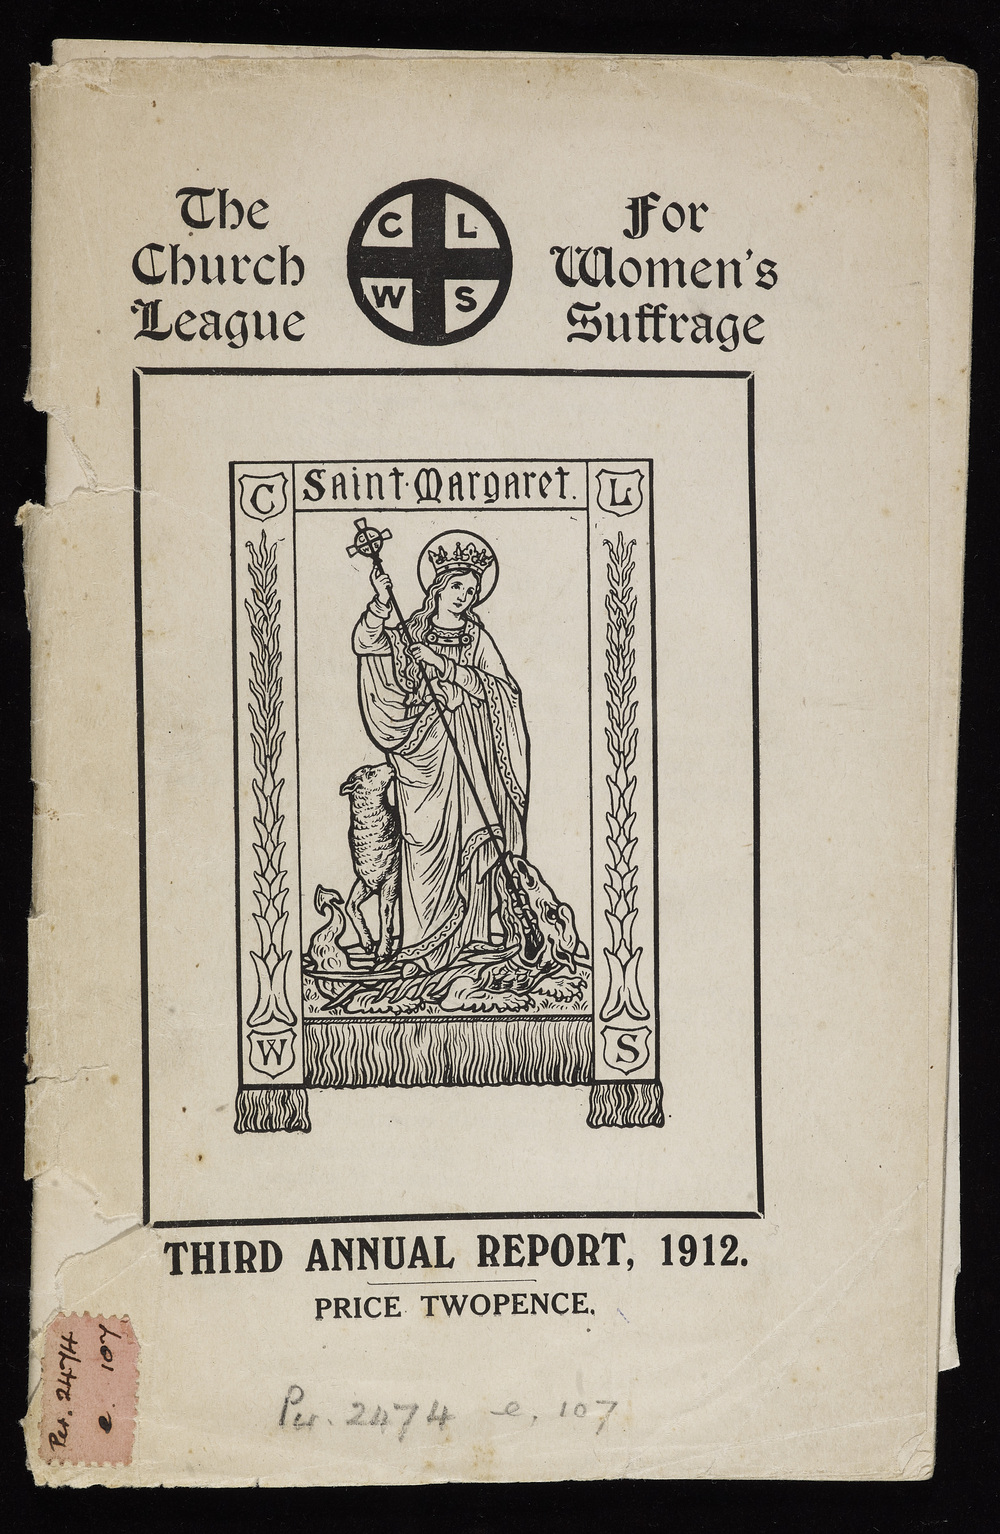 The [Anglican] Church League for Women's Suffrage, third annual report, 1912